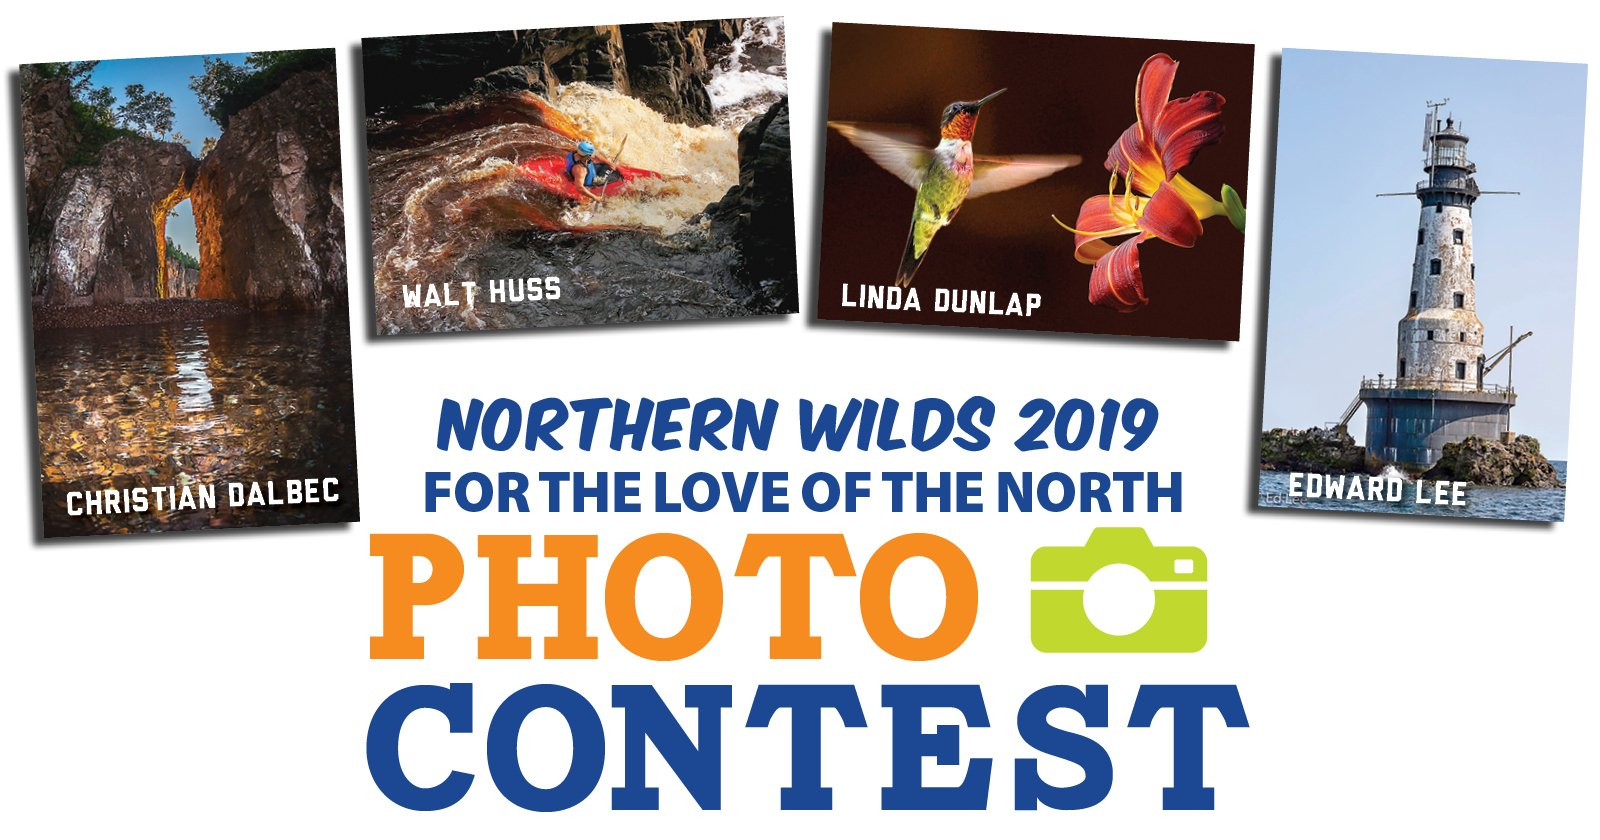 Northern Wilds 2019 For the Love of the North Photo Contest